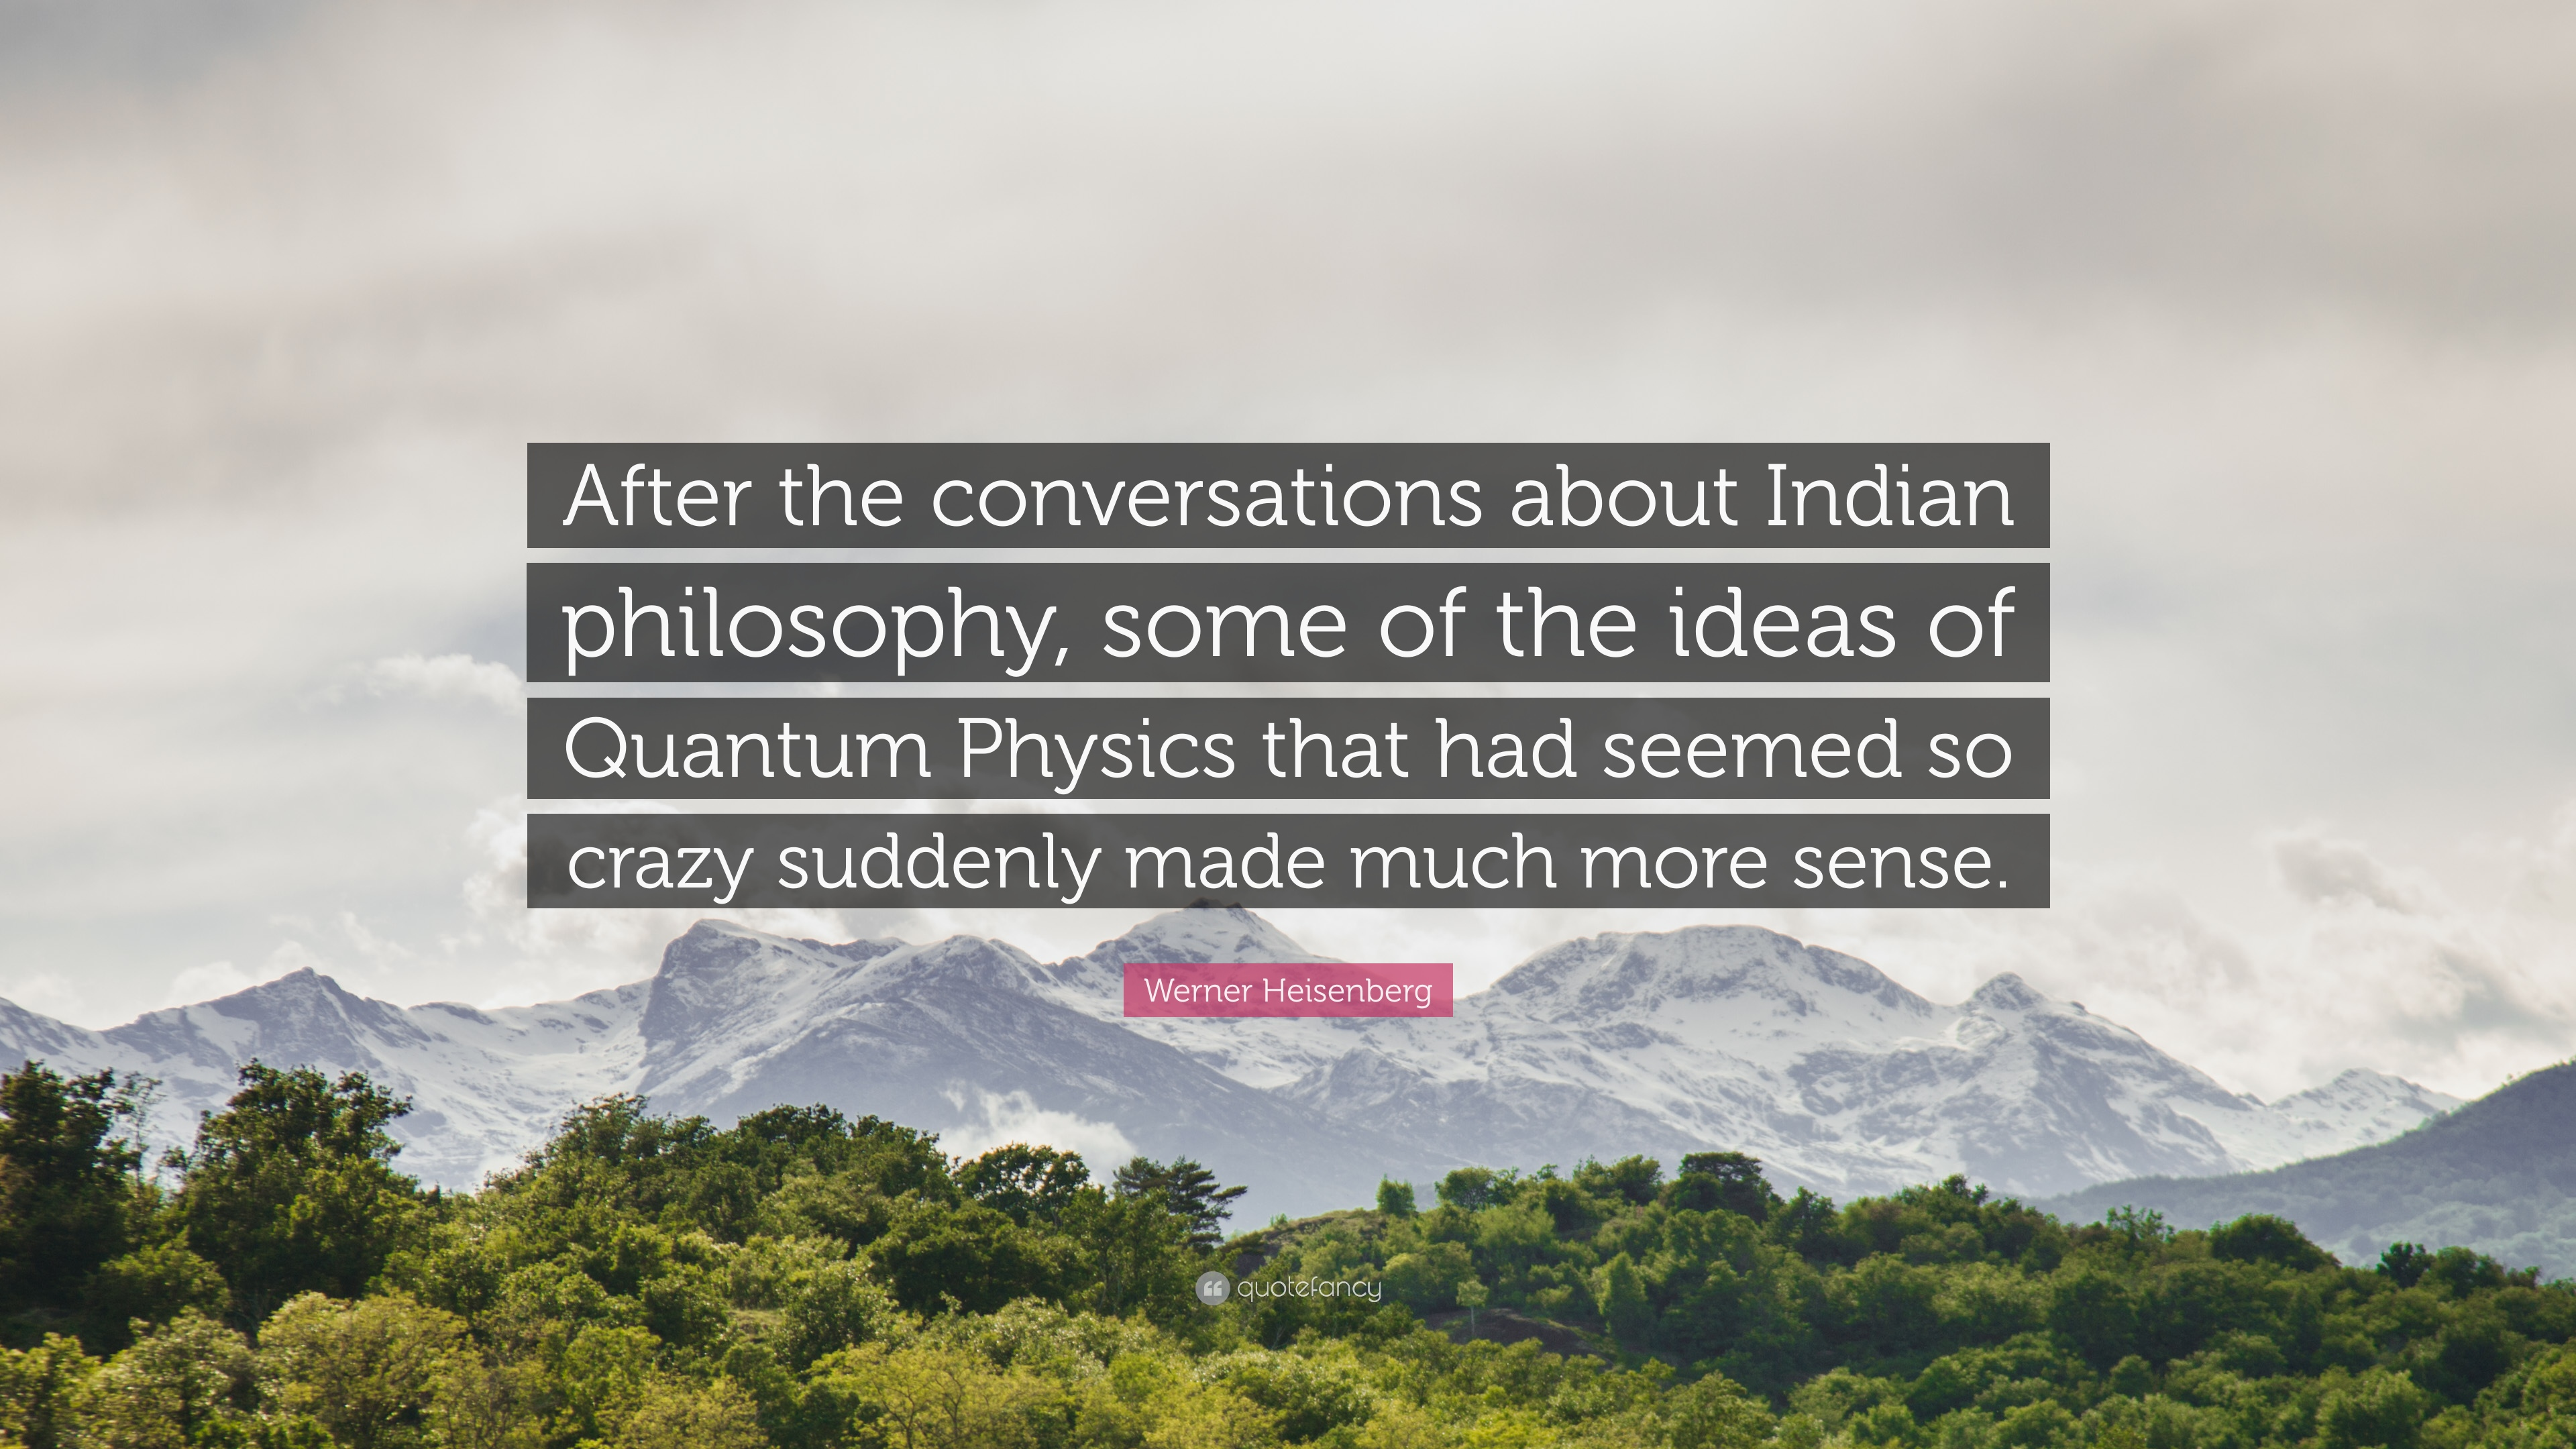 werner heisenberg quote after the conversations about indian